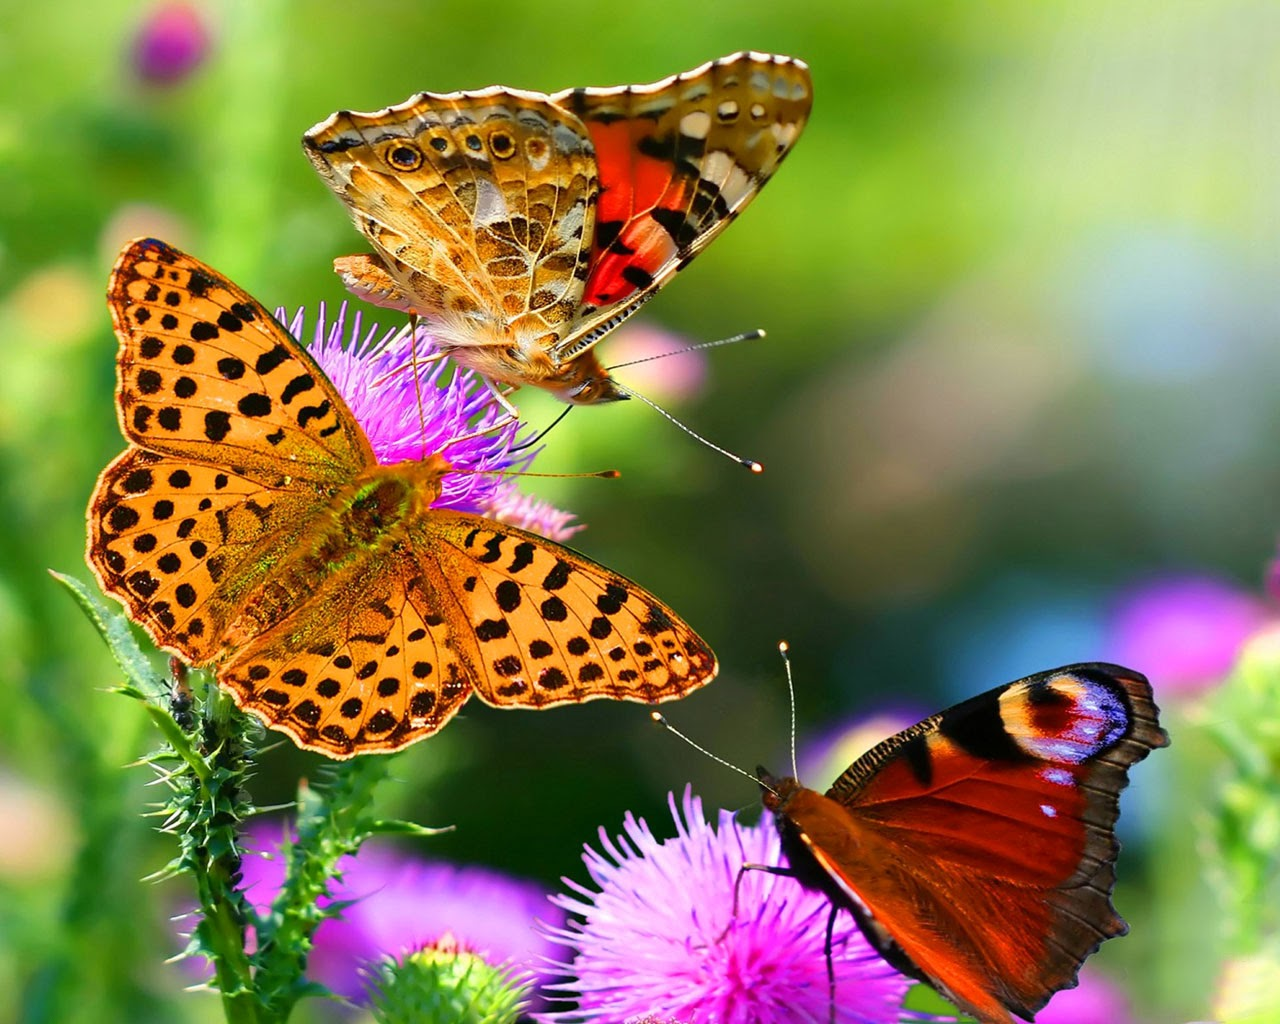 Amazing Butterfly Hd Image